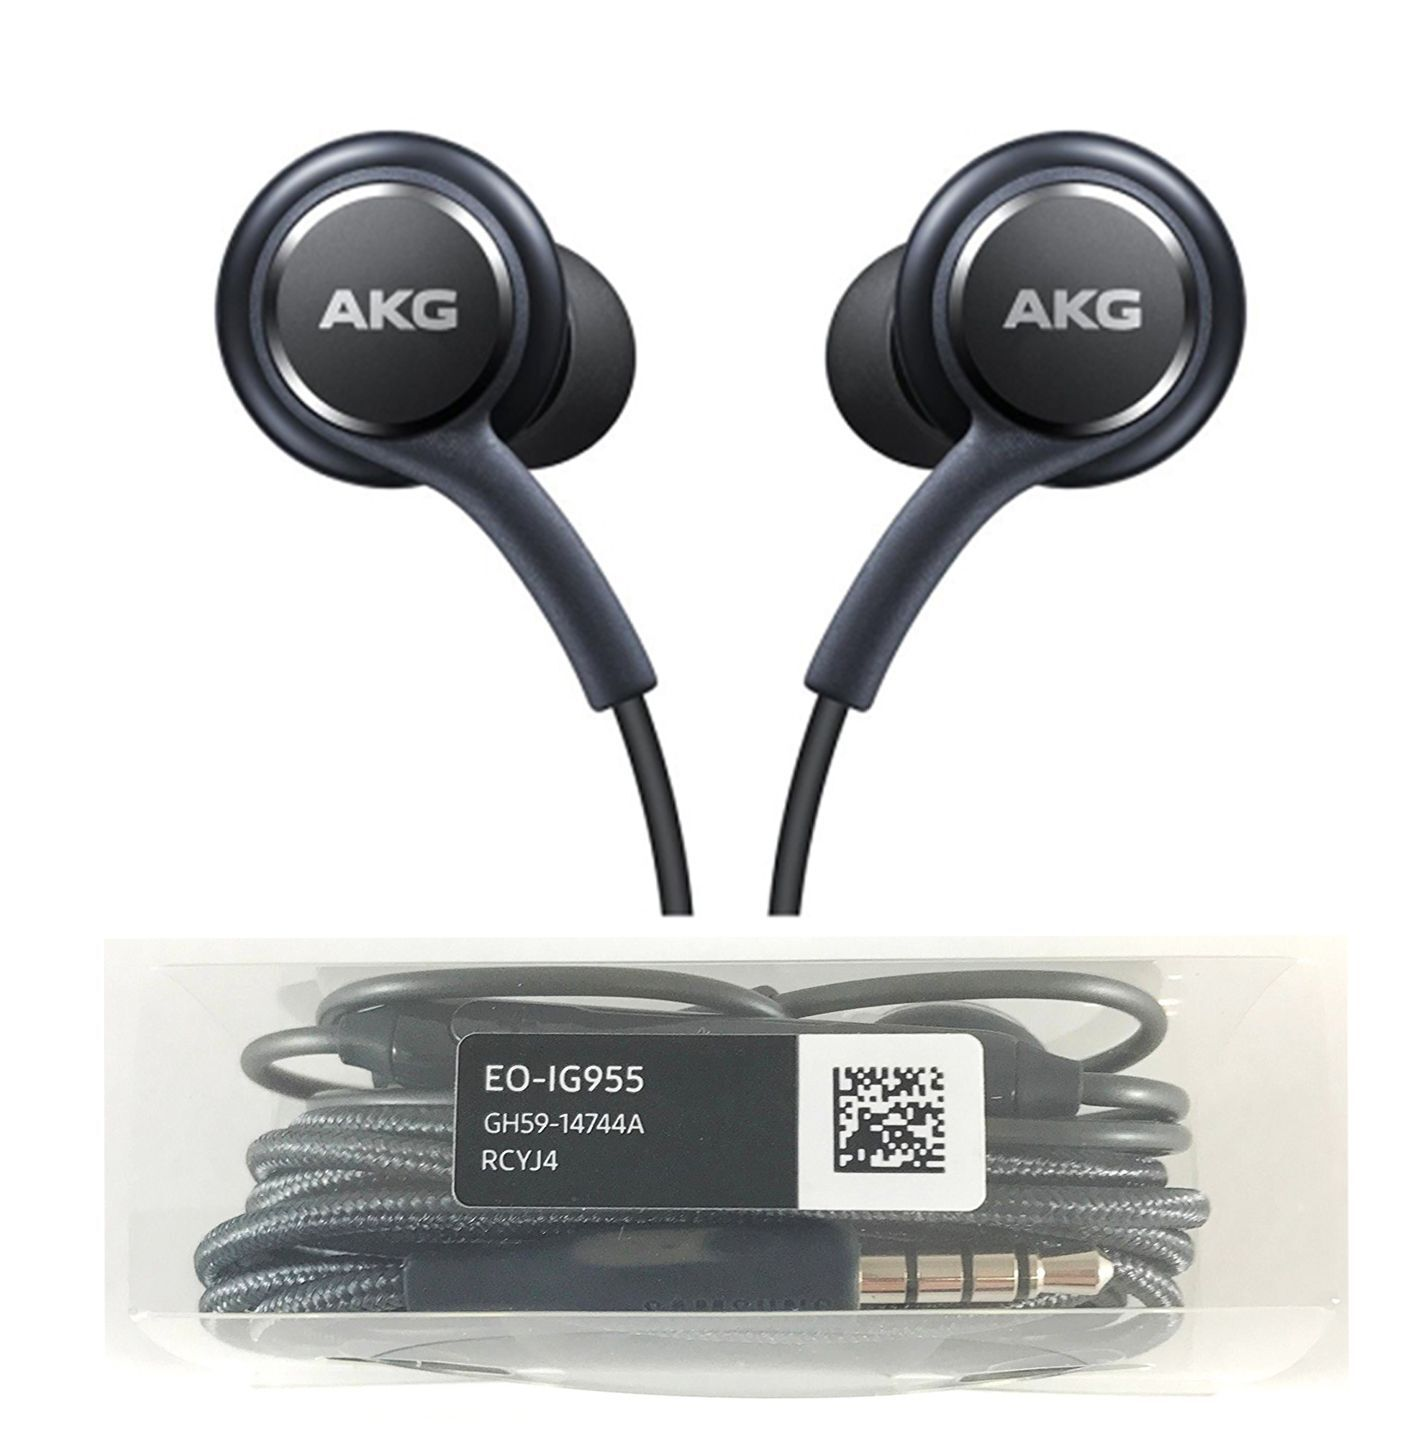 Details about Replacement In-Ear Earphones For Samsung Galaxy S8 S9 S7 Note  8 AKG Headphones f57eb3fa42